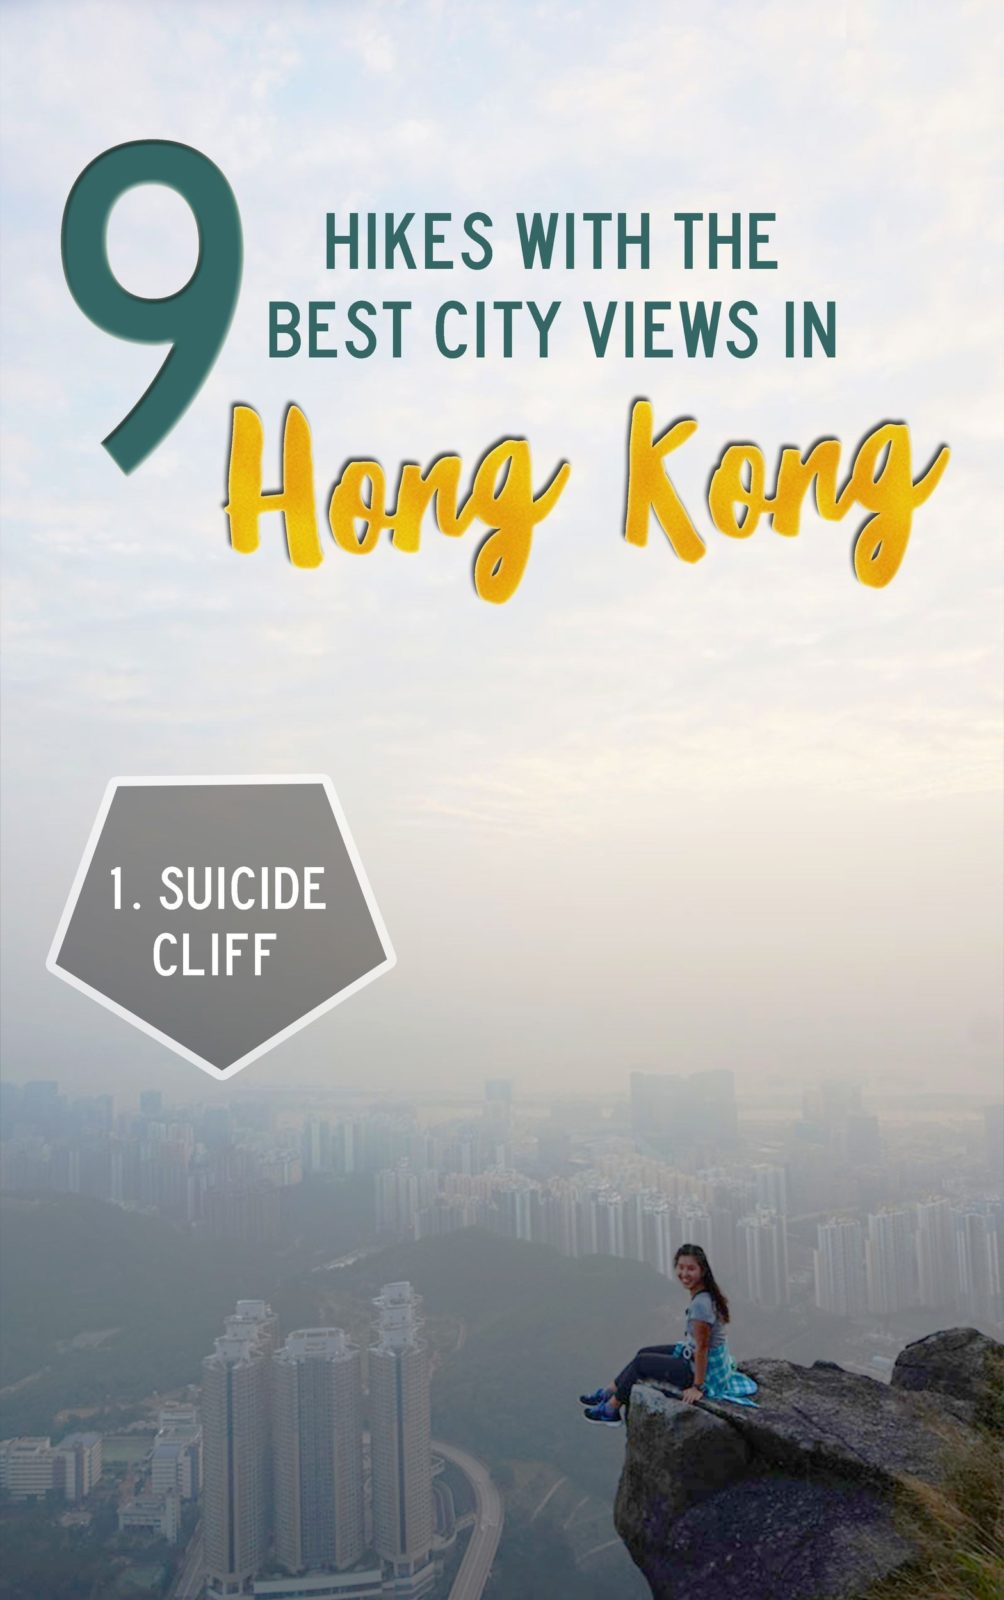 9 hikes with the best city views in Hong Kong